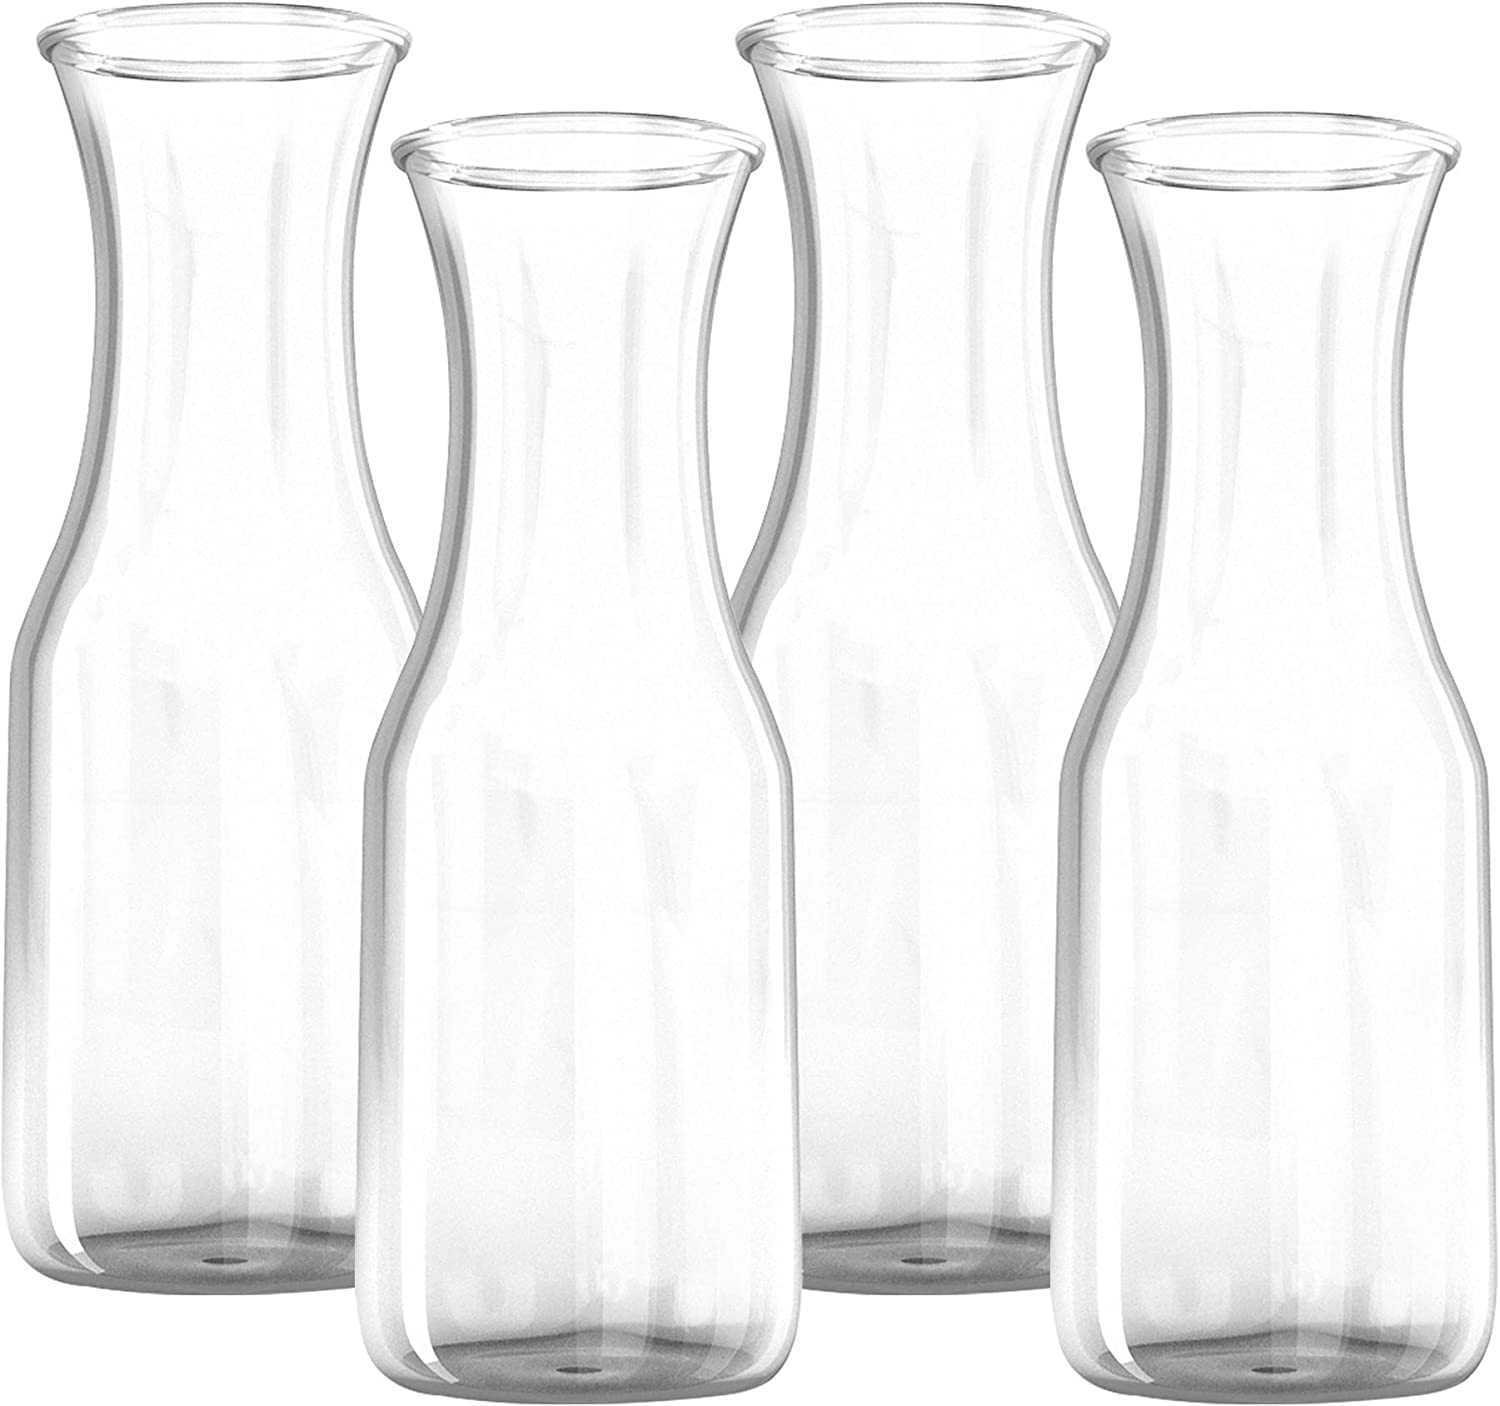 34 Oz Glass Carafe 4 Pack Drink Pitcher And Elegant Wine Decanter Comfortable Grip With Narrow Neck Design Wide Opening For Easy Pouring Great For Parties And Events 1 Liter Kitchen Lux Wine Decanters